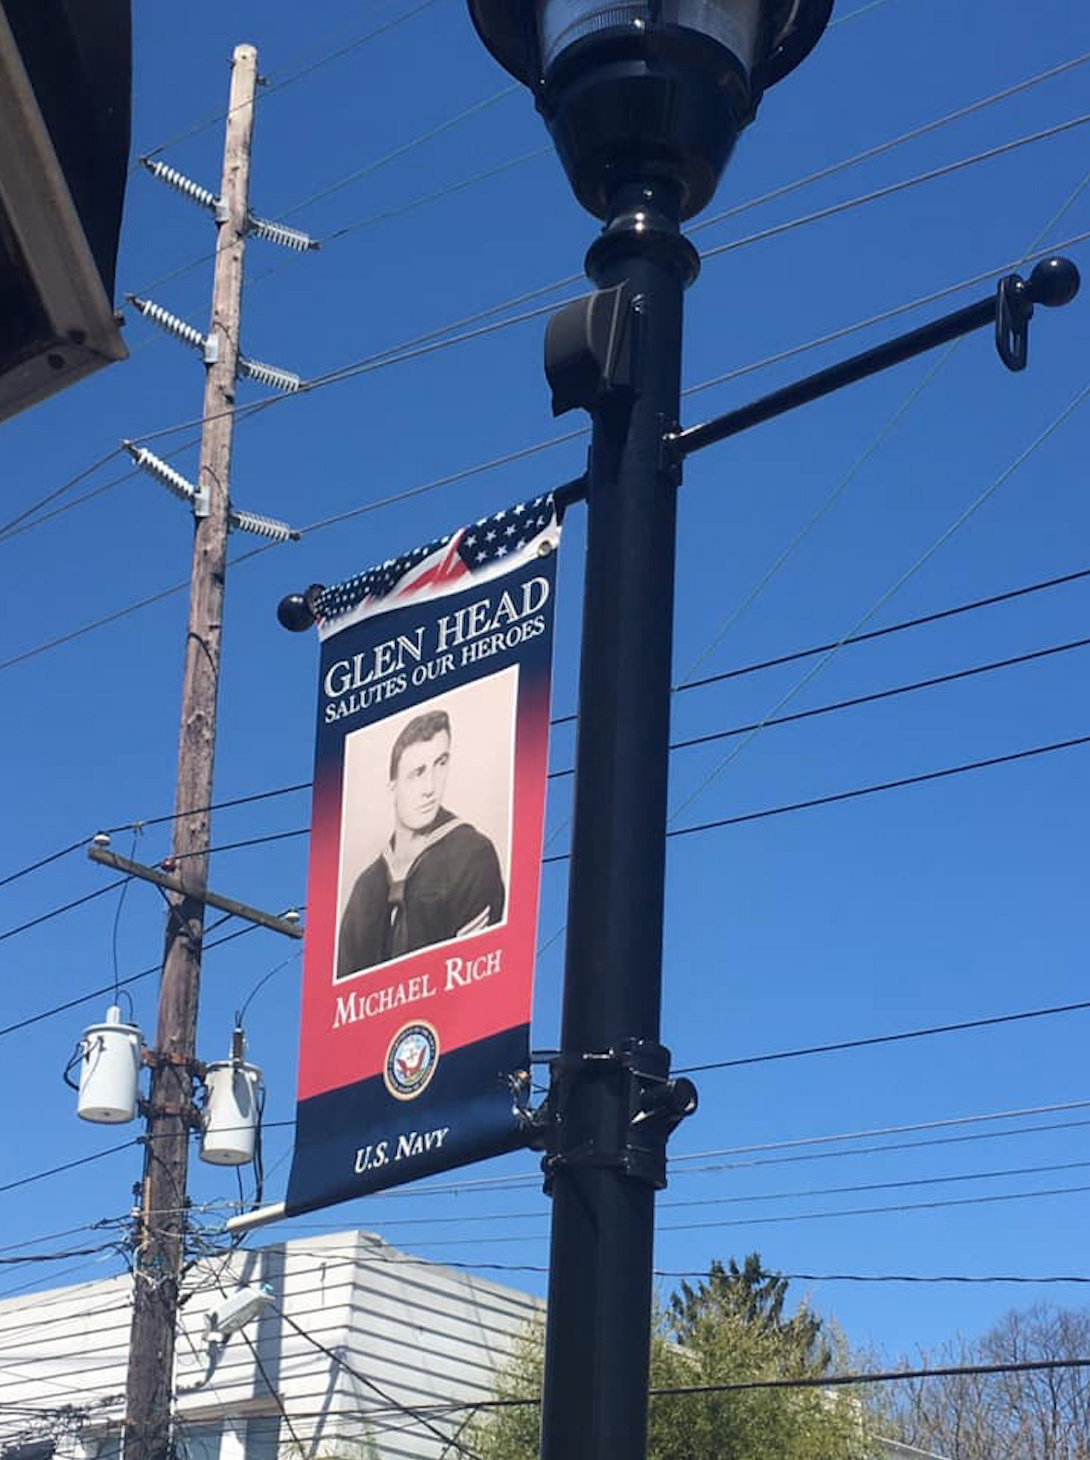 Veteran Michael Rich's Hometown Heroes banner was the first to be hung up in Glen Head.